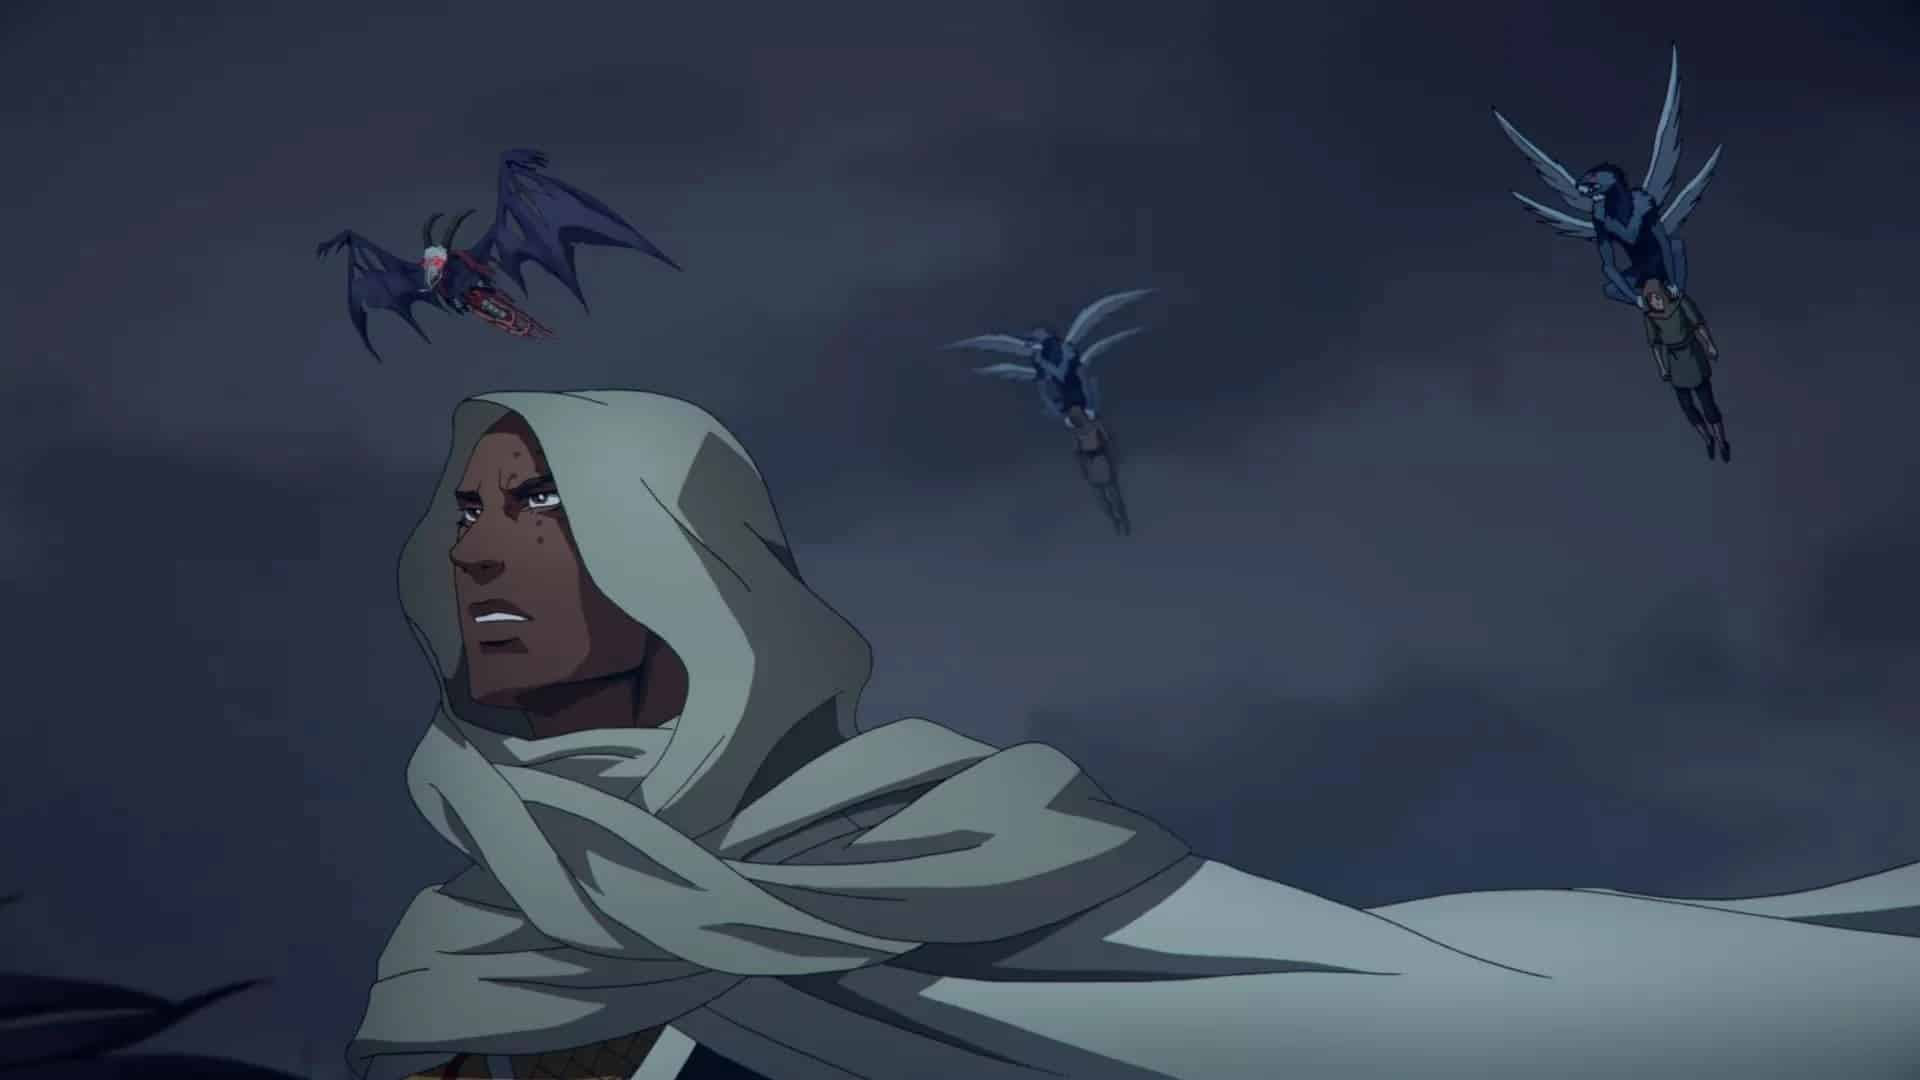 Castlevania season 3 episode 9 review The Harvest war, murder, sex threesome for some reason